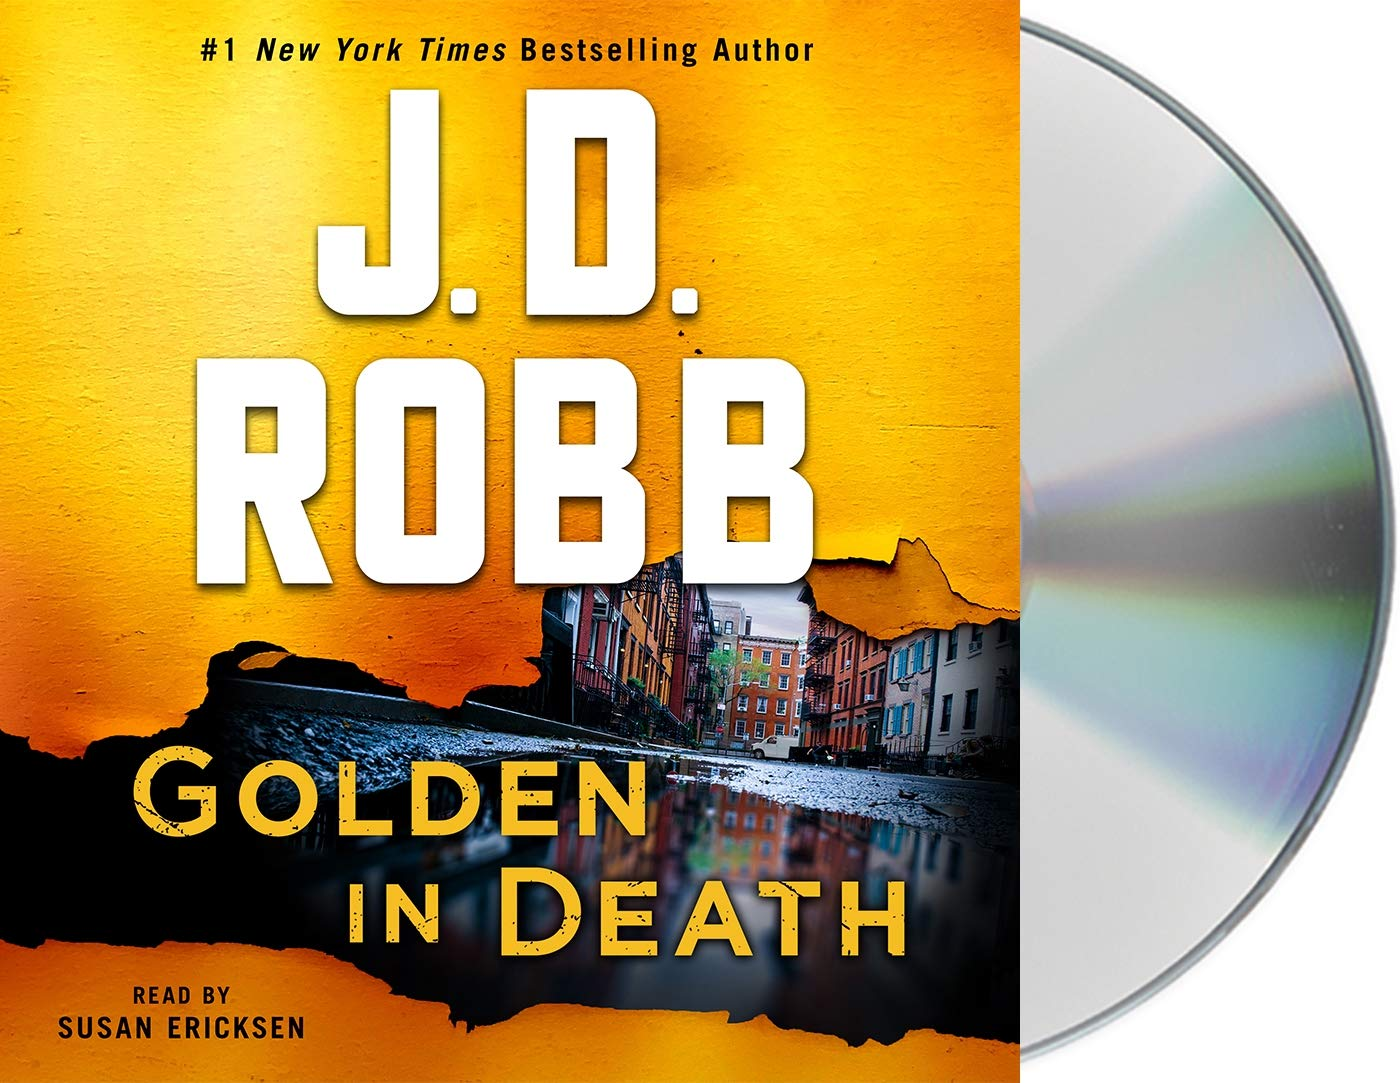 Golden in Death: An Eve Dallas Novel (In Death, Book 50) by Macmillan Audio